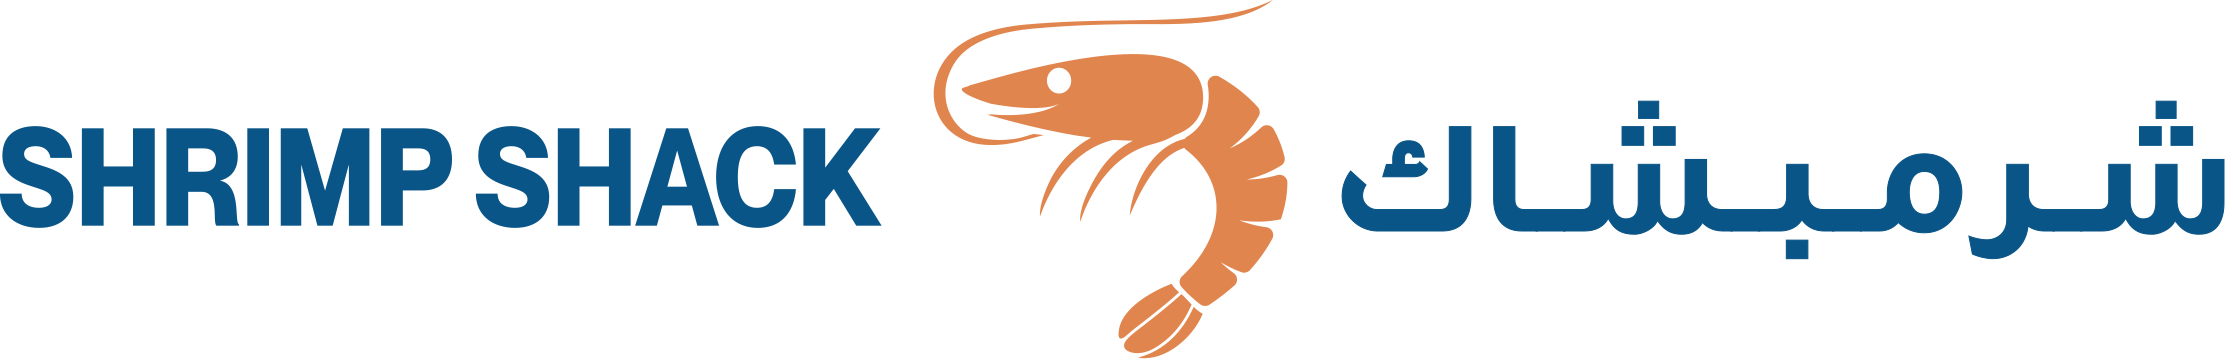 Shrimp Shack Logo